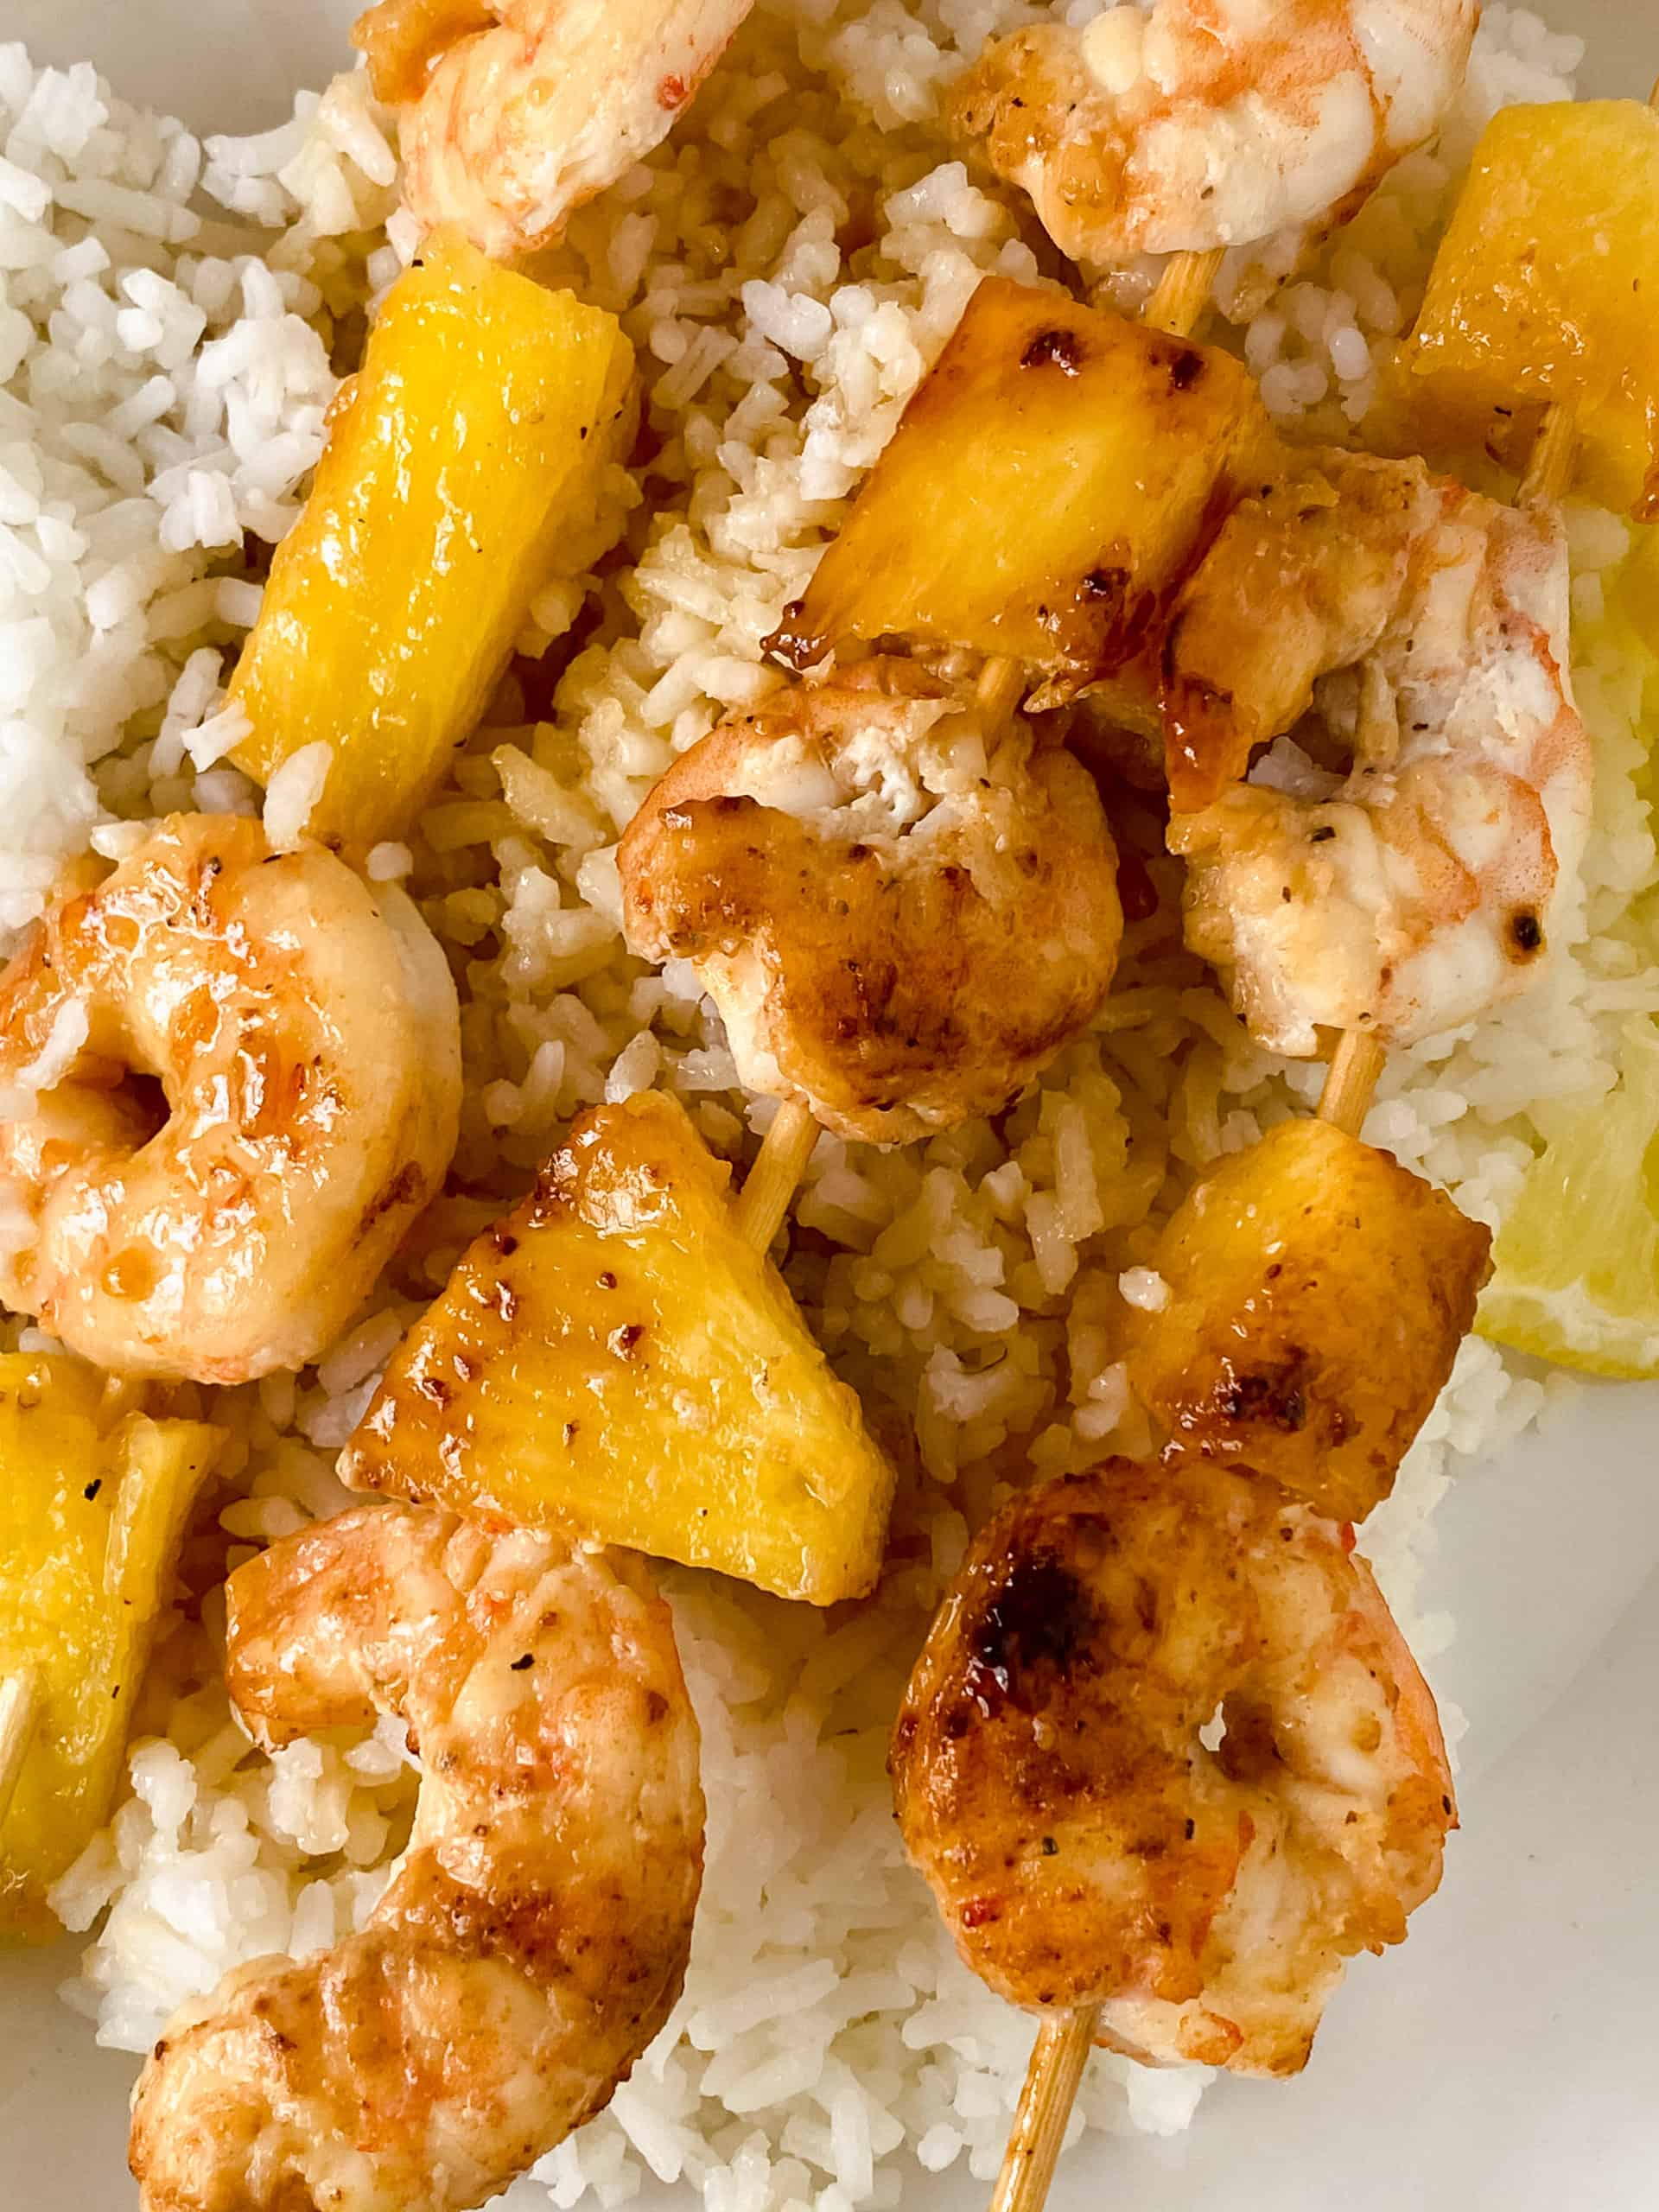 Close up on skewers with shrimp and pineapple.